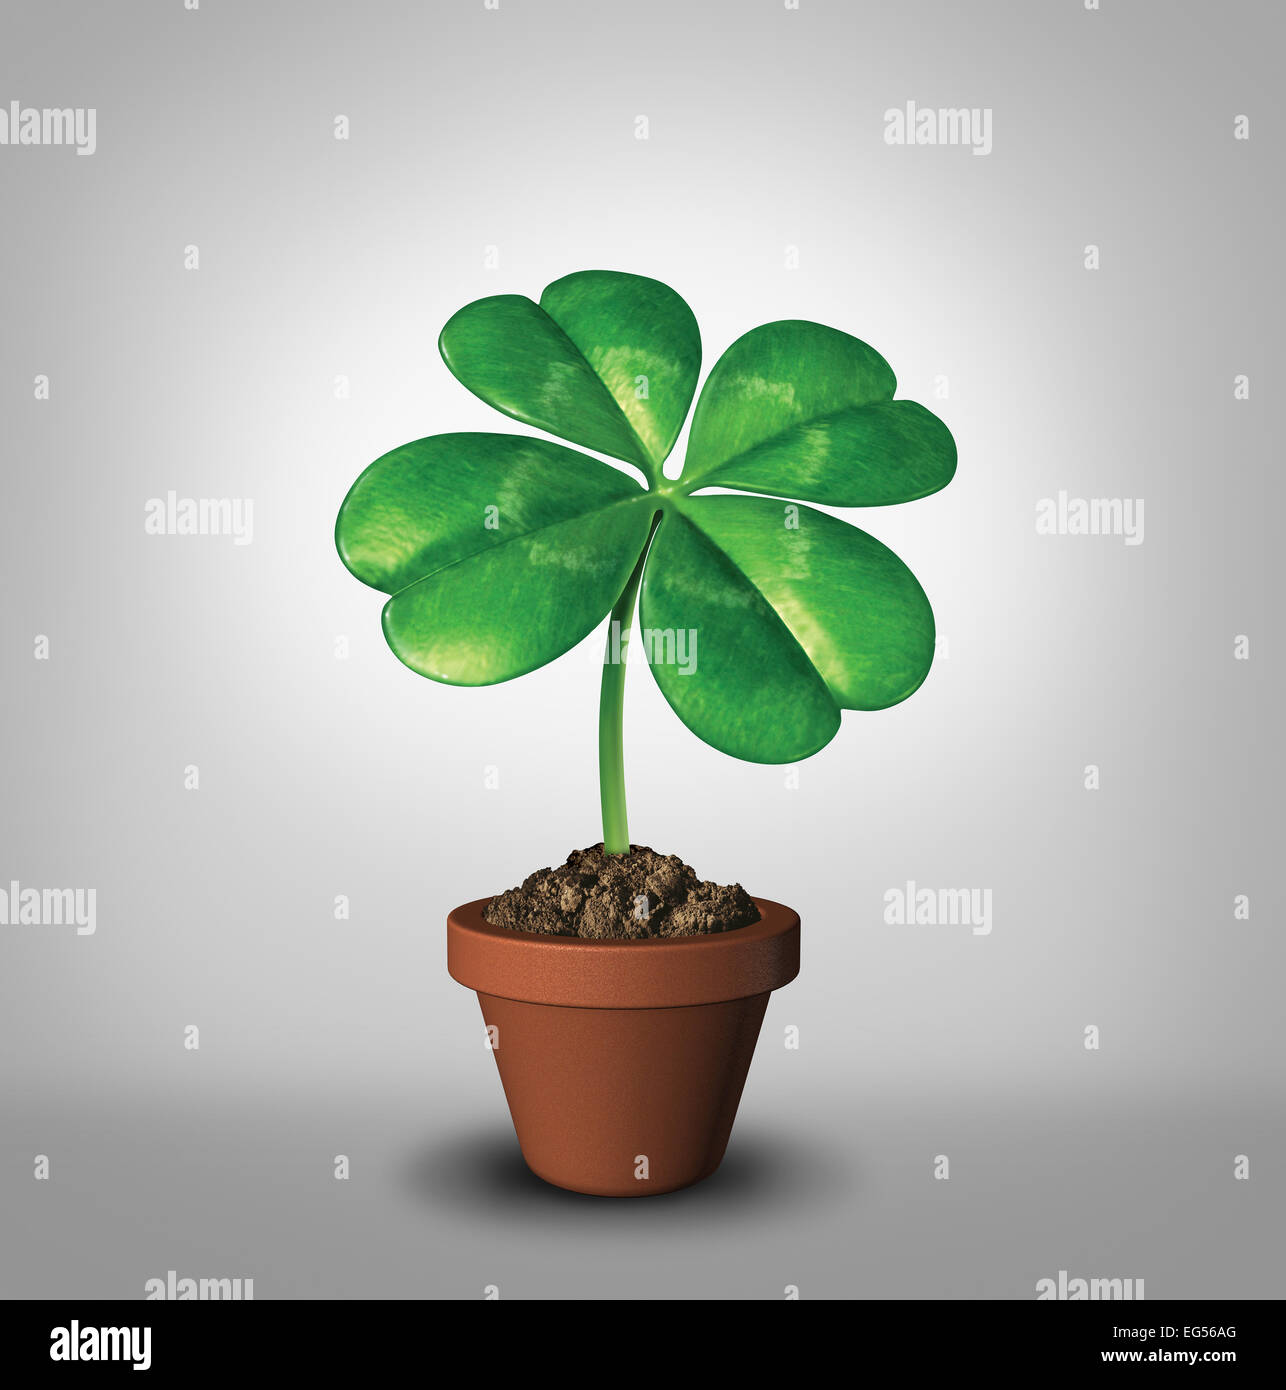 Growing your luck as a four leaf clover plant in a flower pot as a symbol for success and prosperity as a green - Stock Image